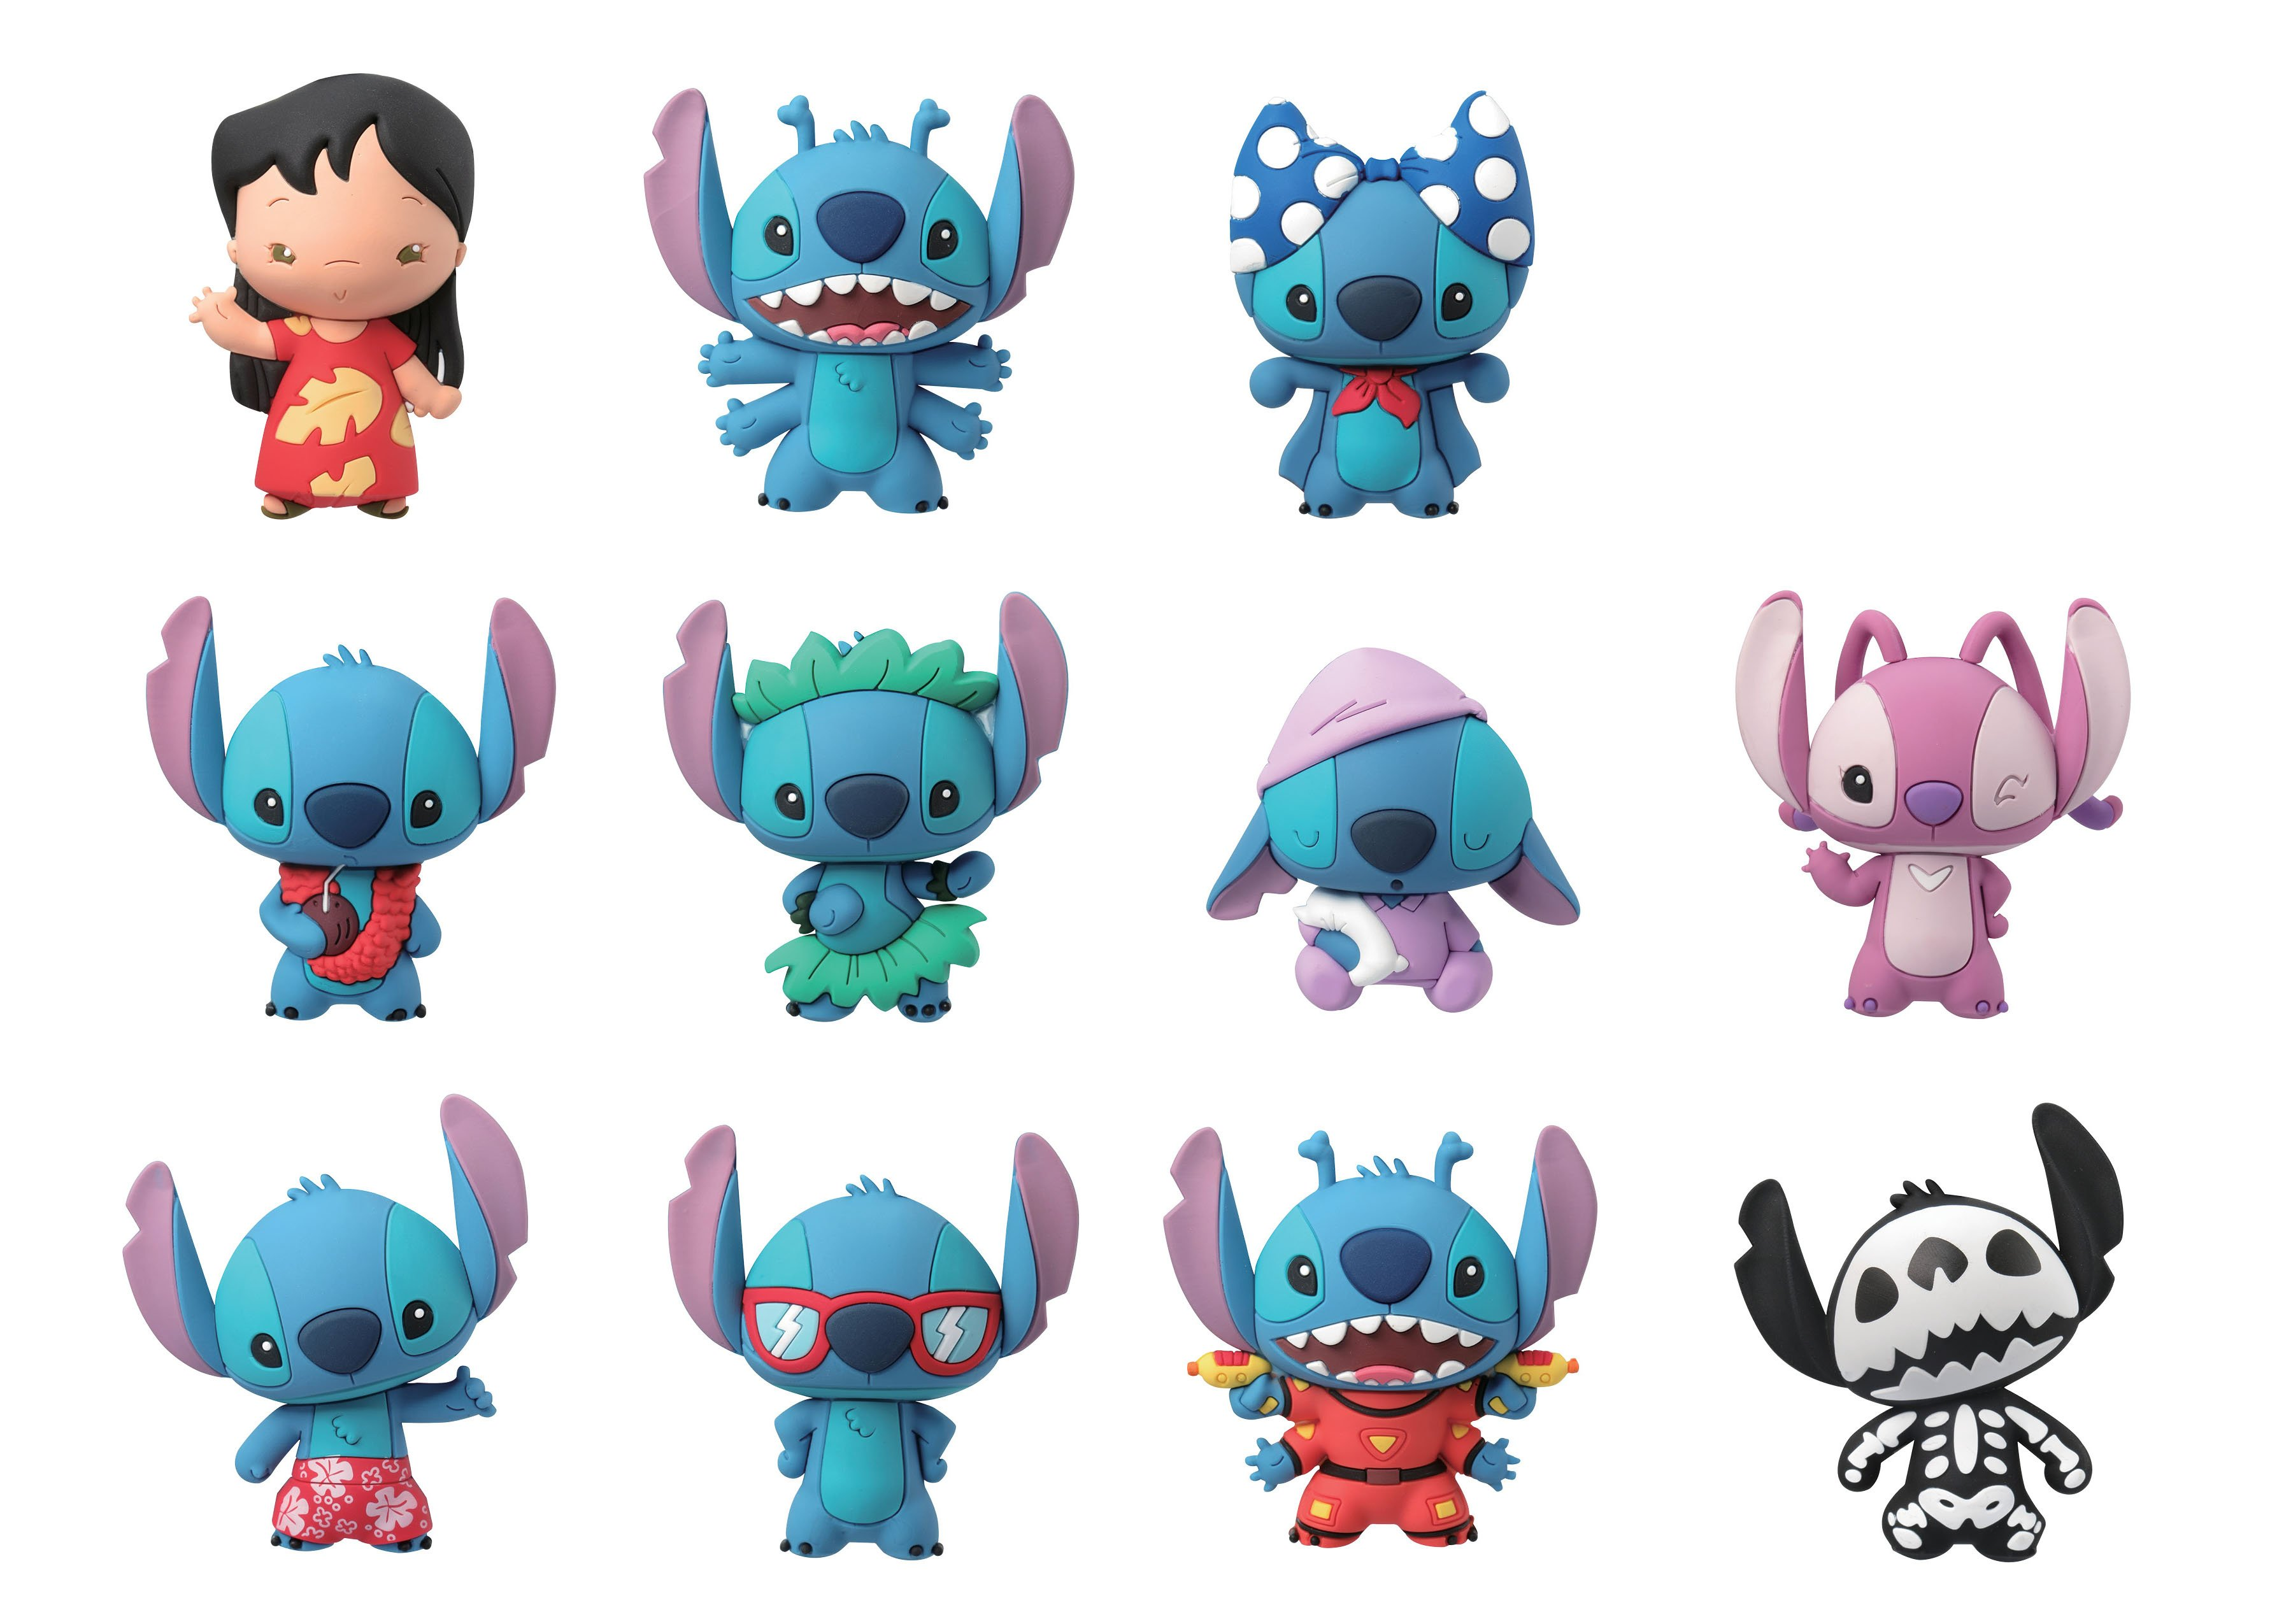 Monogram Lilo Amp Stitch 3d Foam Blind Bag Collection